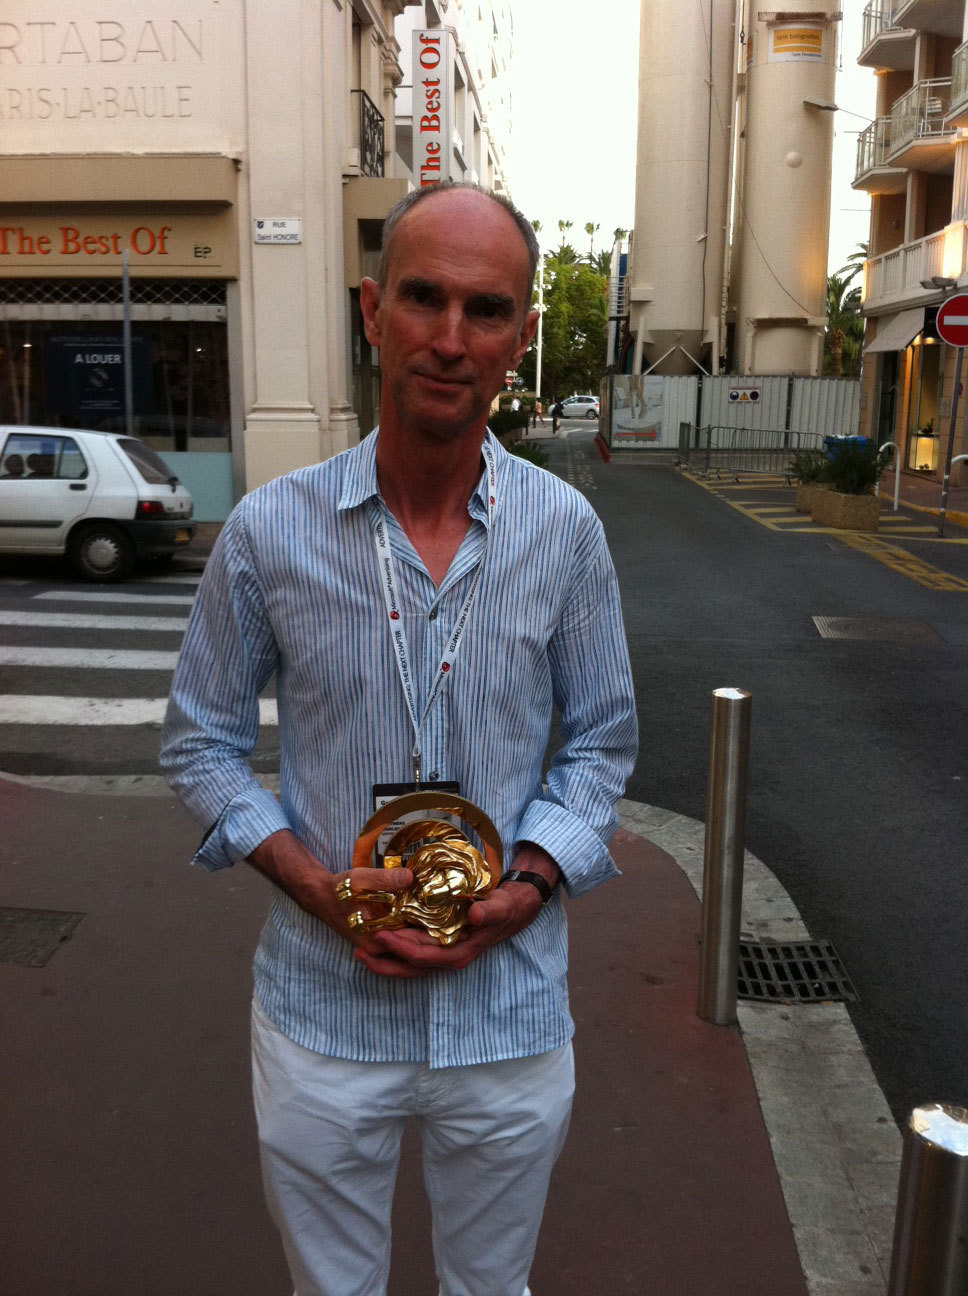 Here's Greg Delaney from @DLKWLowe with the Gold #CannesLions for Microloan Pennies for Life campaign. Congrats again!